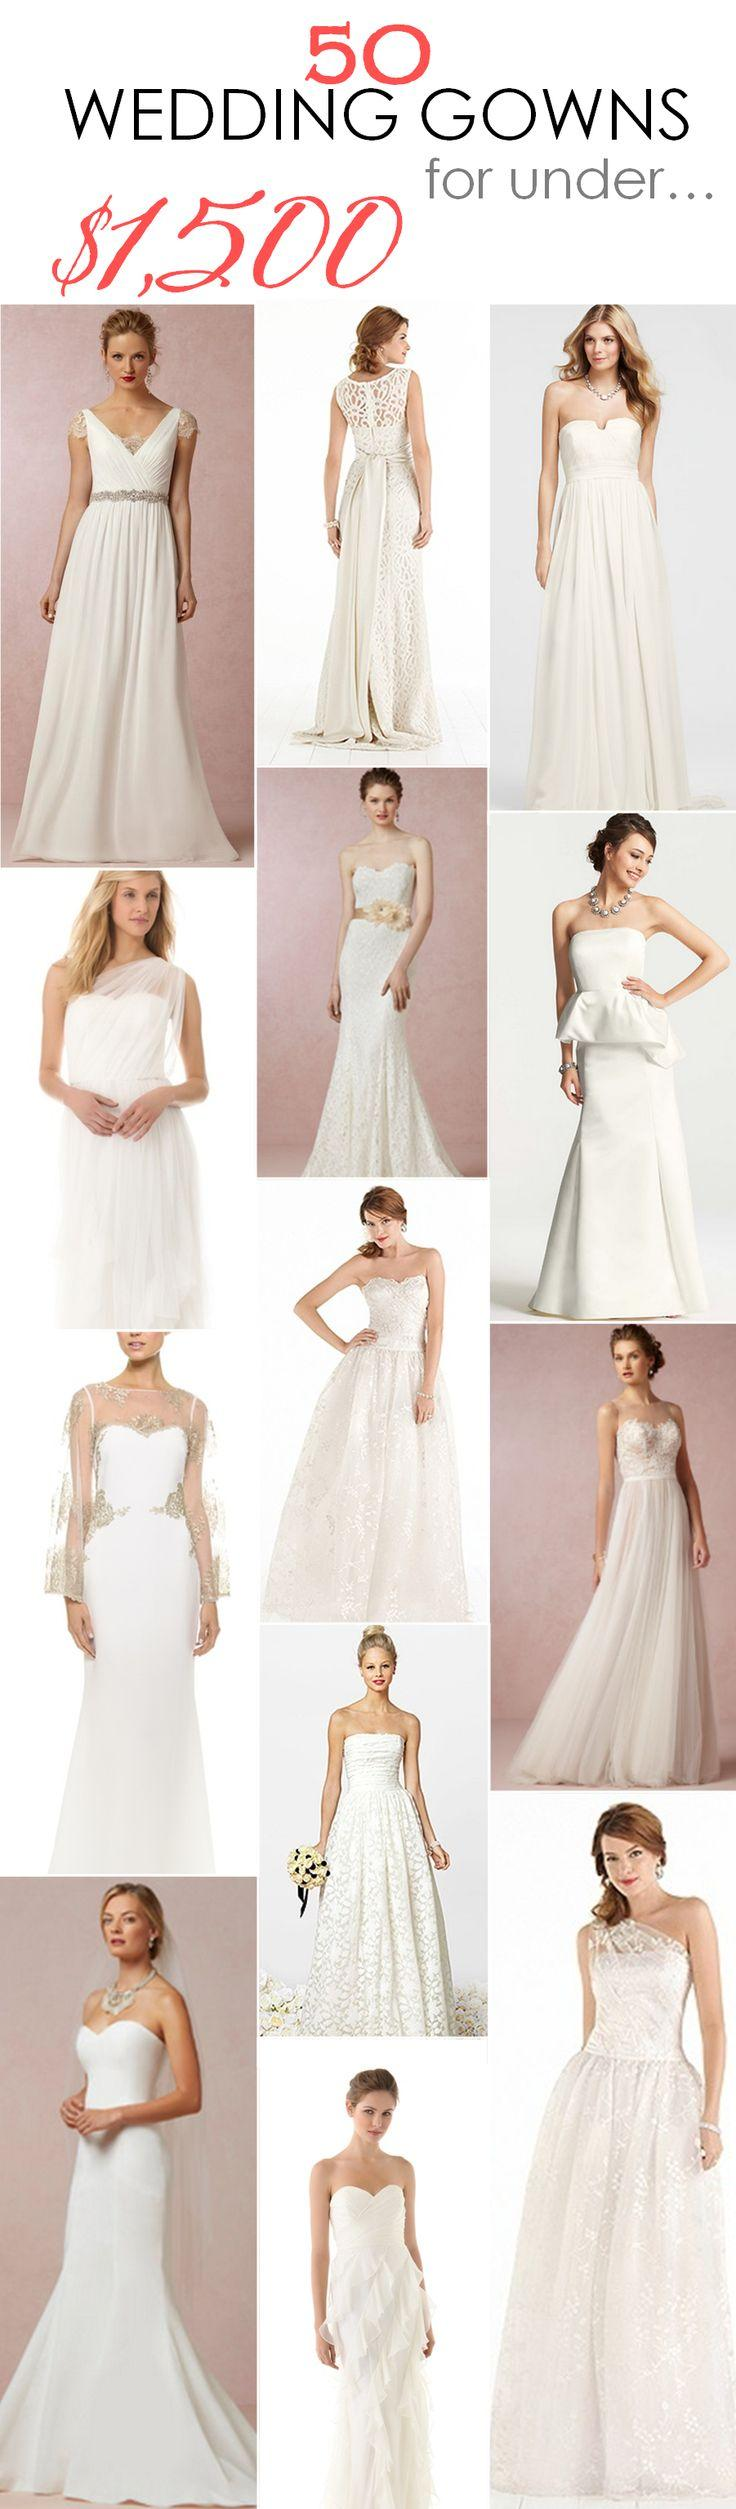 Свадьба - 50 Wedding Gowns For Under $1,500